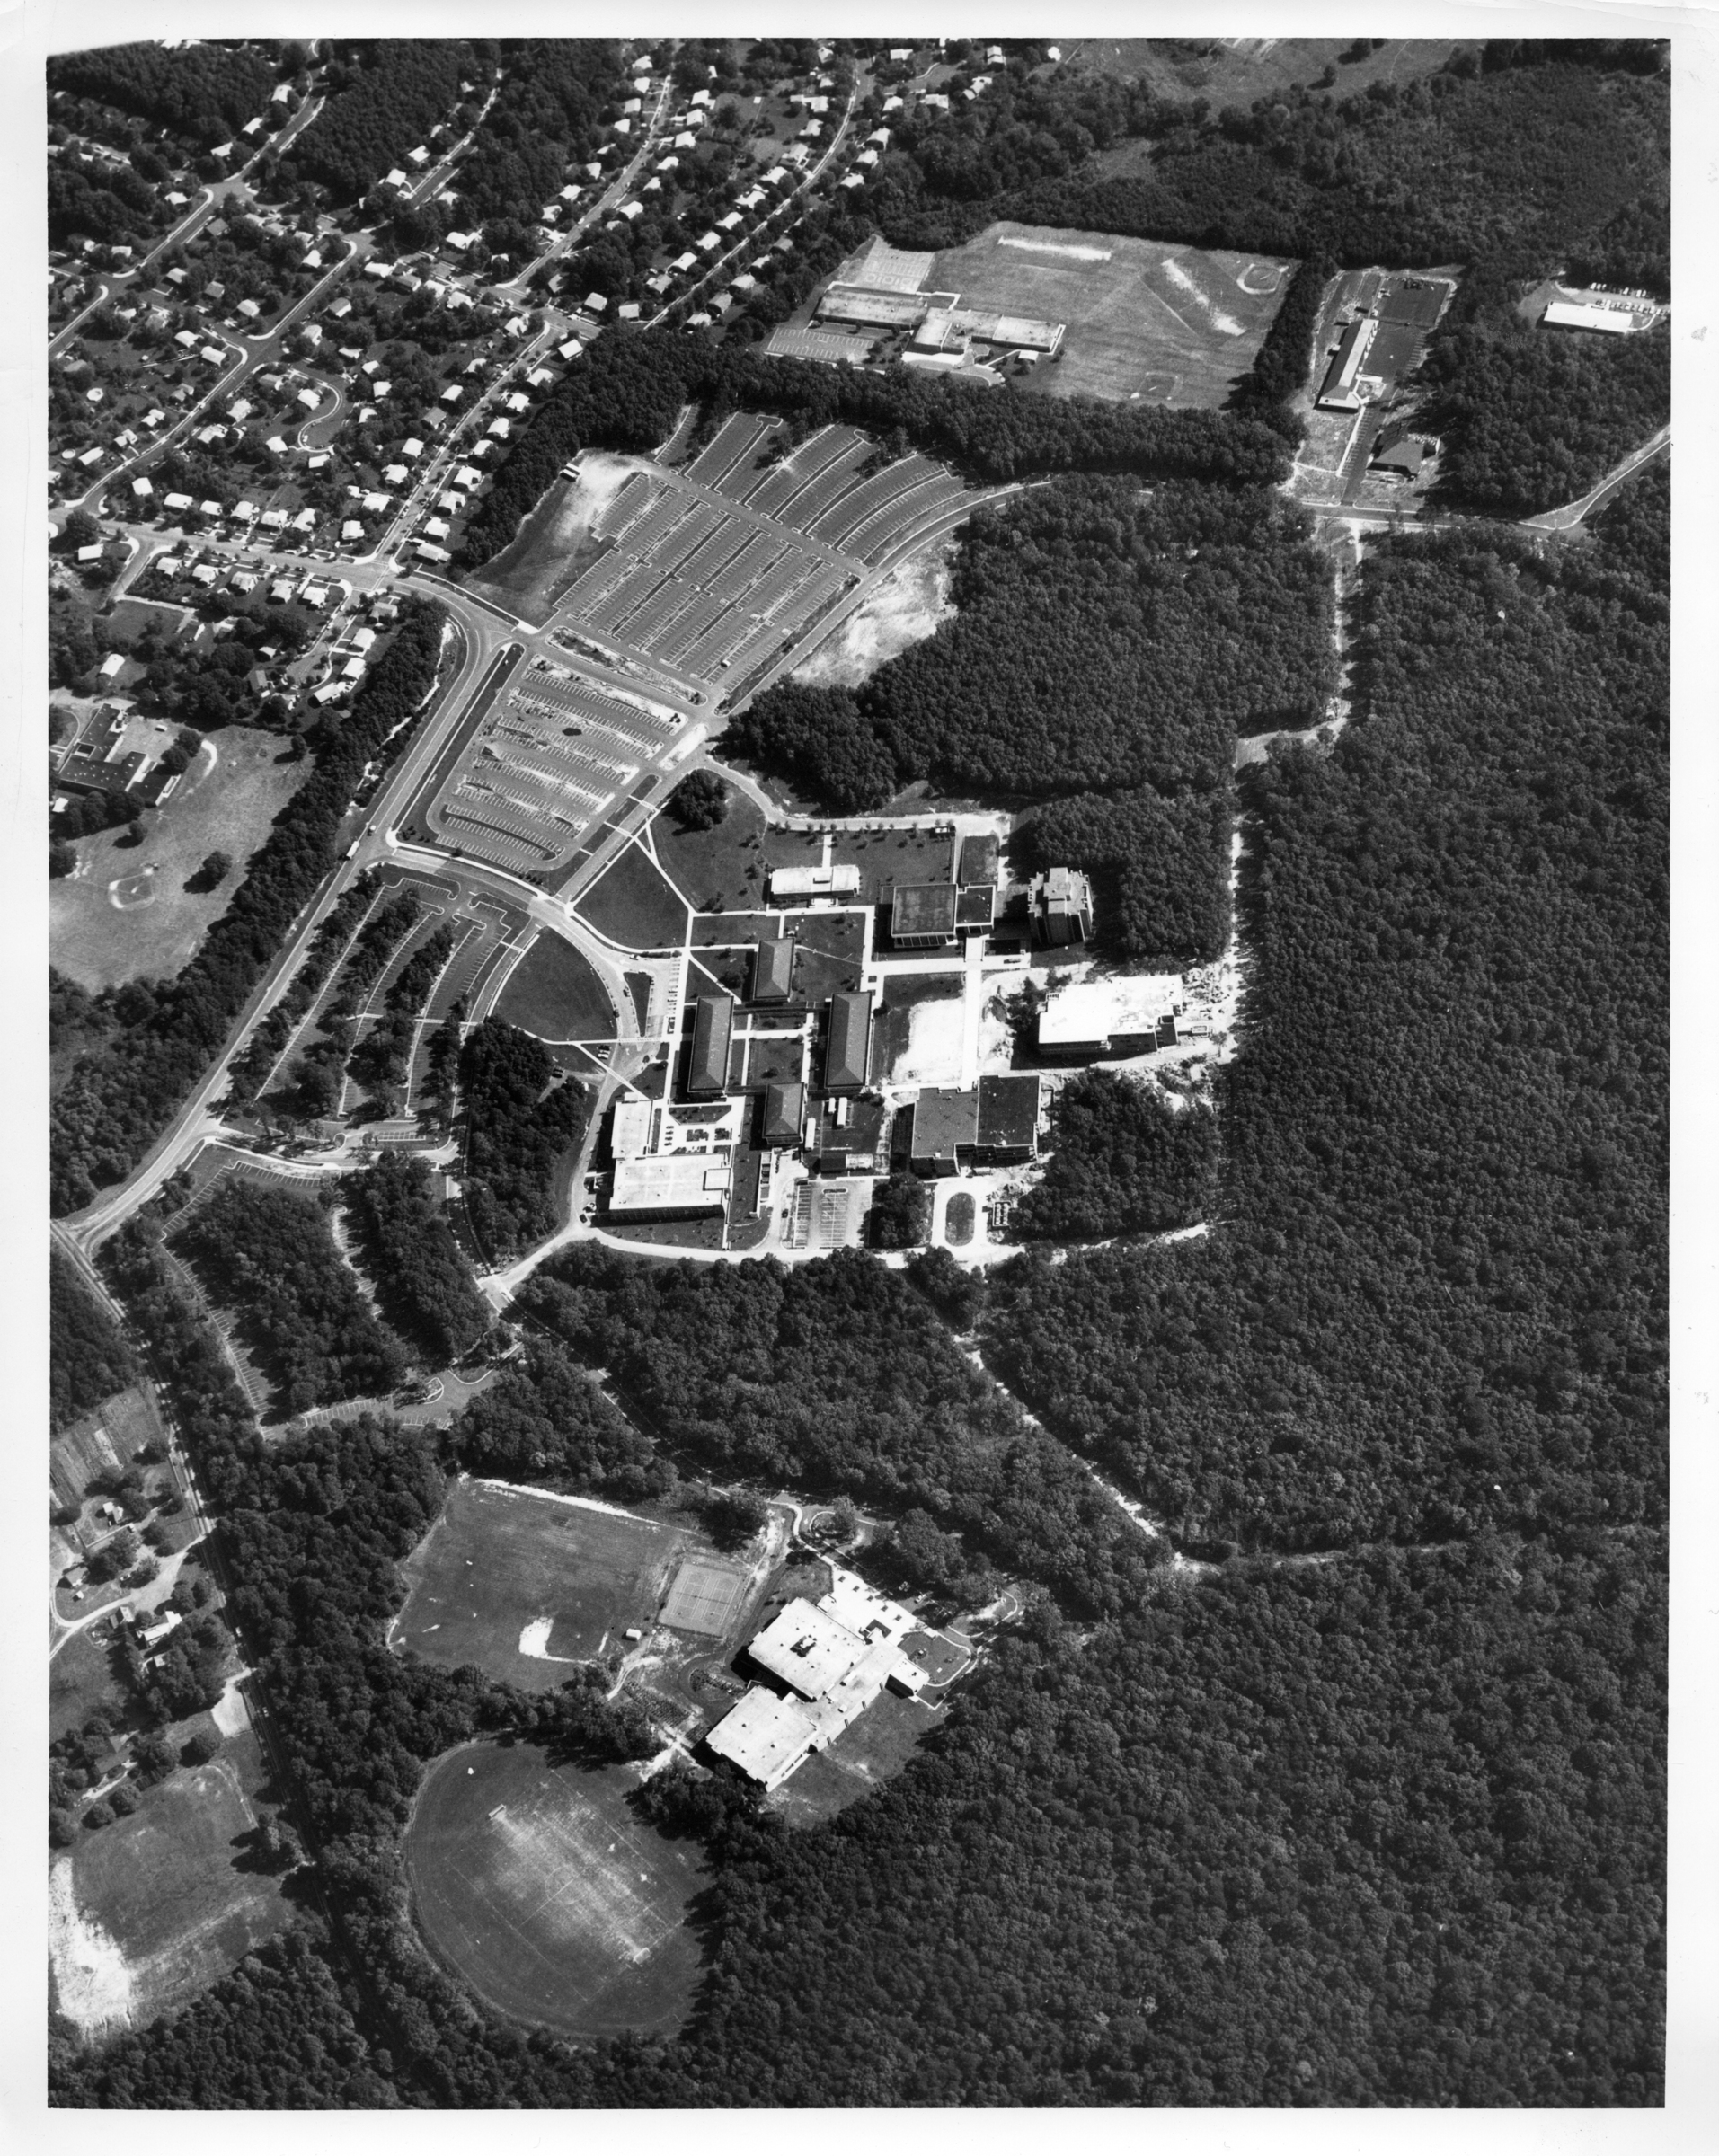 George Mason University, Fairfax campus and surrounding area, September 1974, aerial photograph